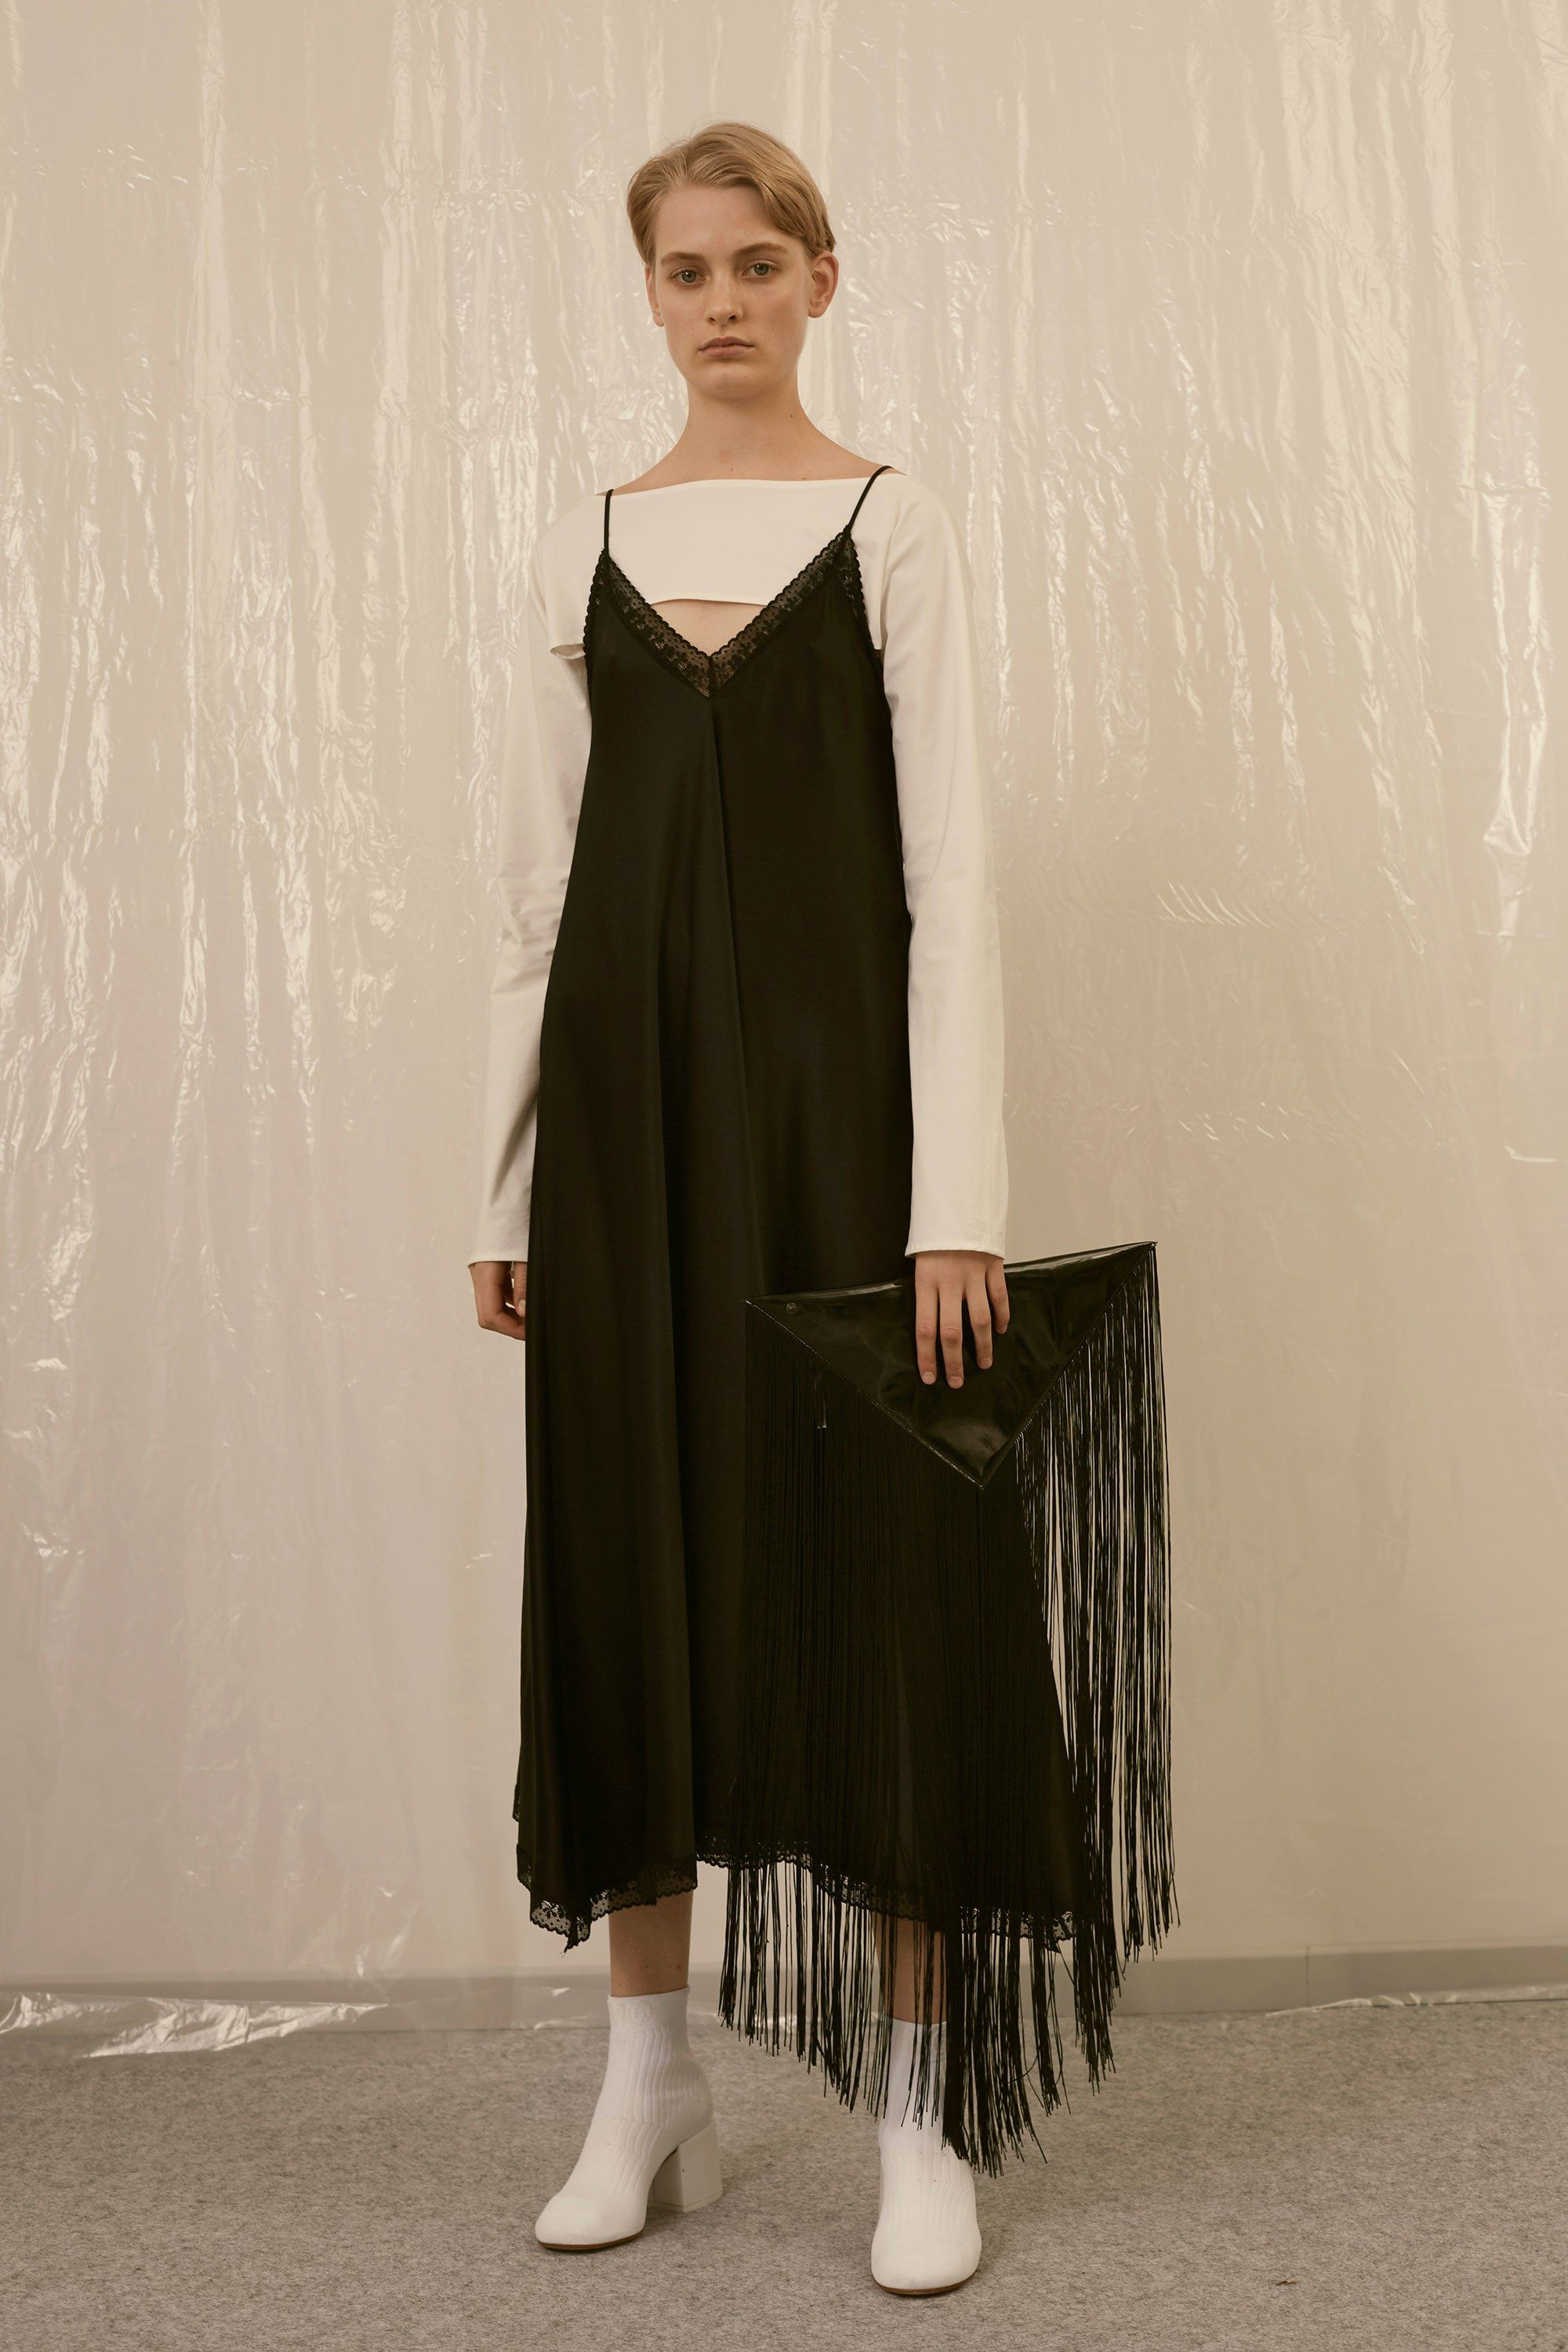 Forum on this topic: MM6 Maison Martin Margiela Pre-Fall 2015 Collection, mm6-maison-martin-margiela-pre-fall-2015-collection/